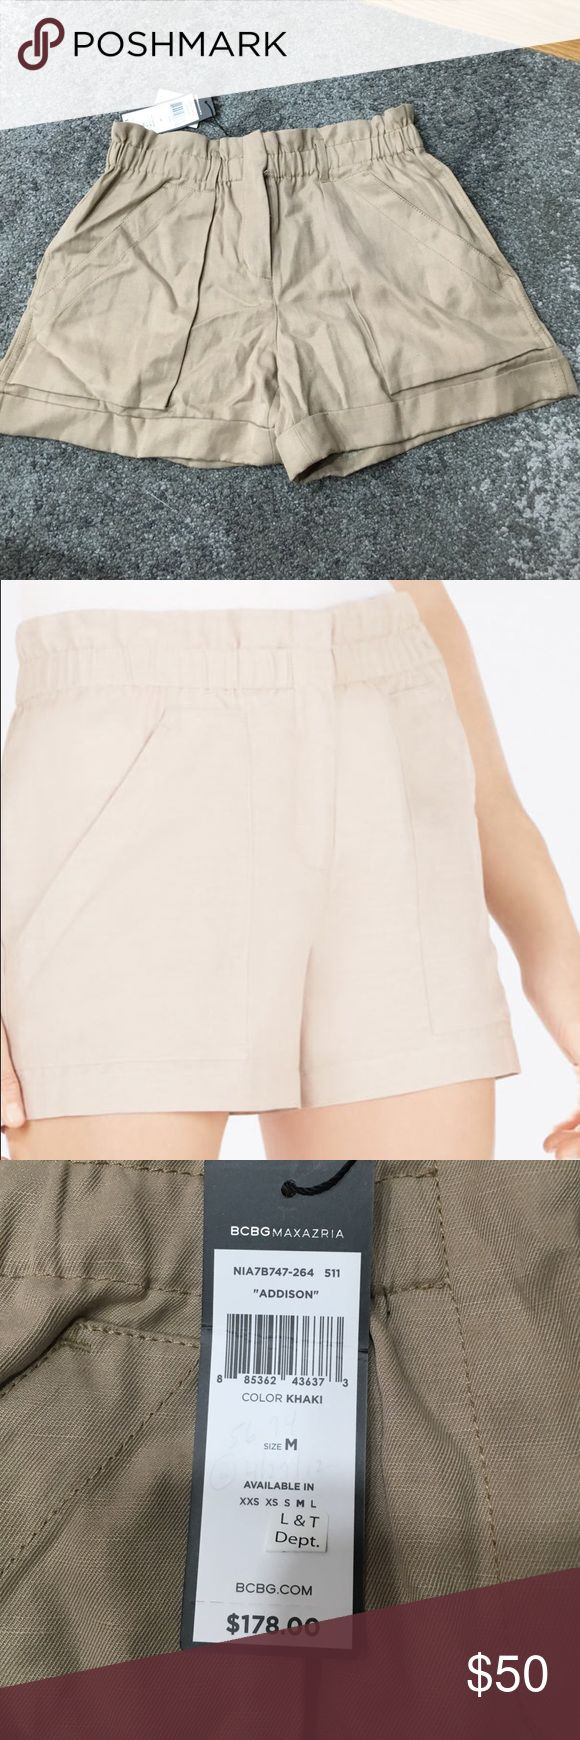 ✨NWT Bcbg Maxazria Addison khaki Shorts Brand new Bcbg Maxazria Addison shorts in khaki. A little wrinkled from storage but in perfect brand new condition with tags. Bought from Lord and Taylor. The second picture is for reference of shorts on a person. BCBGMaxAzria Shorts